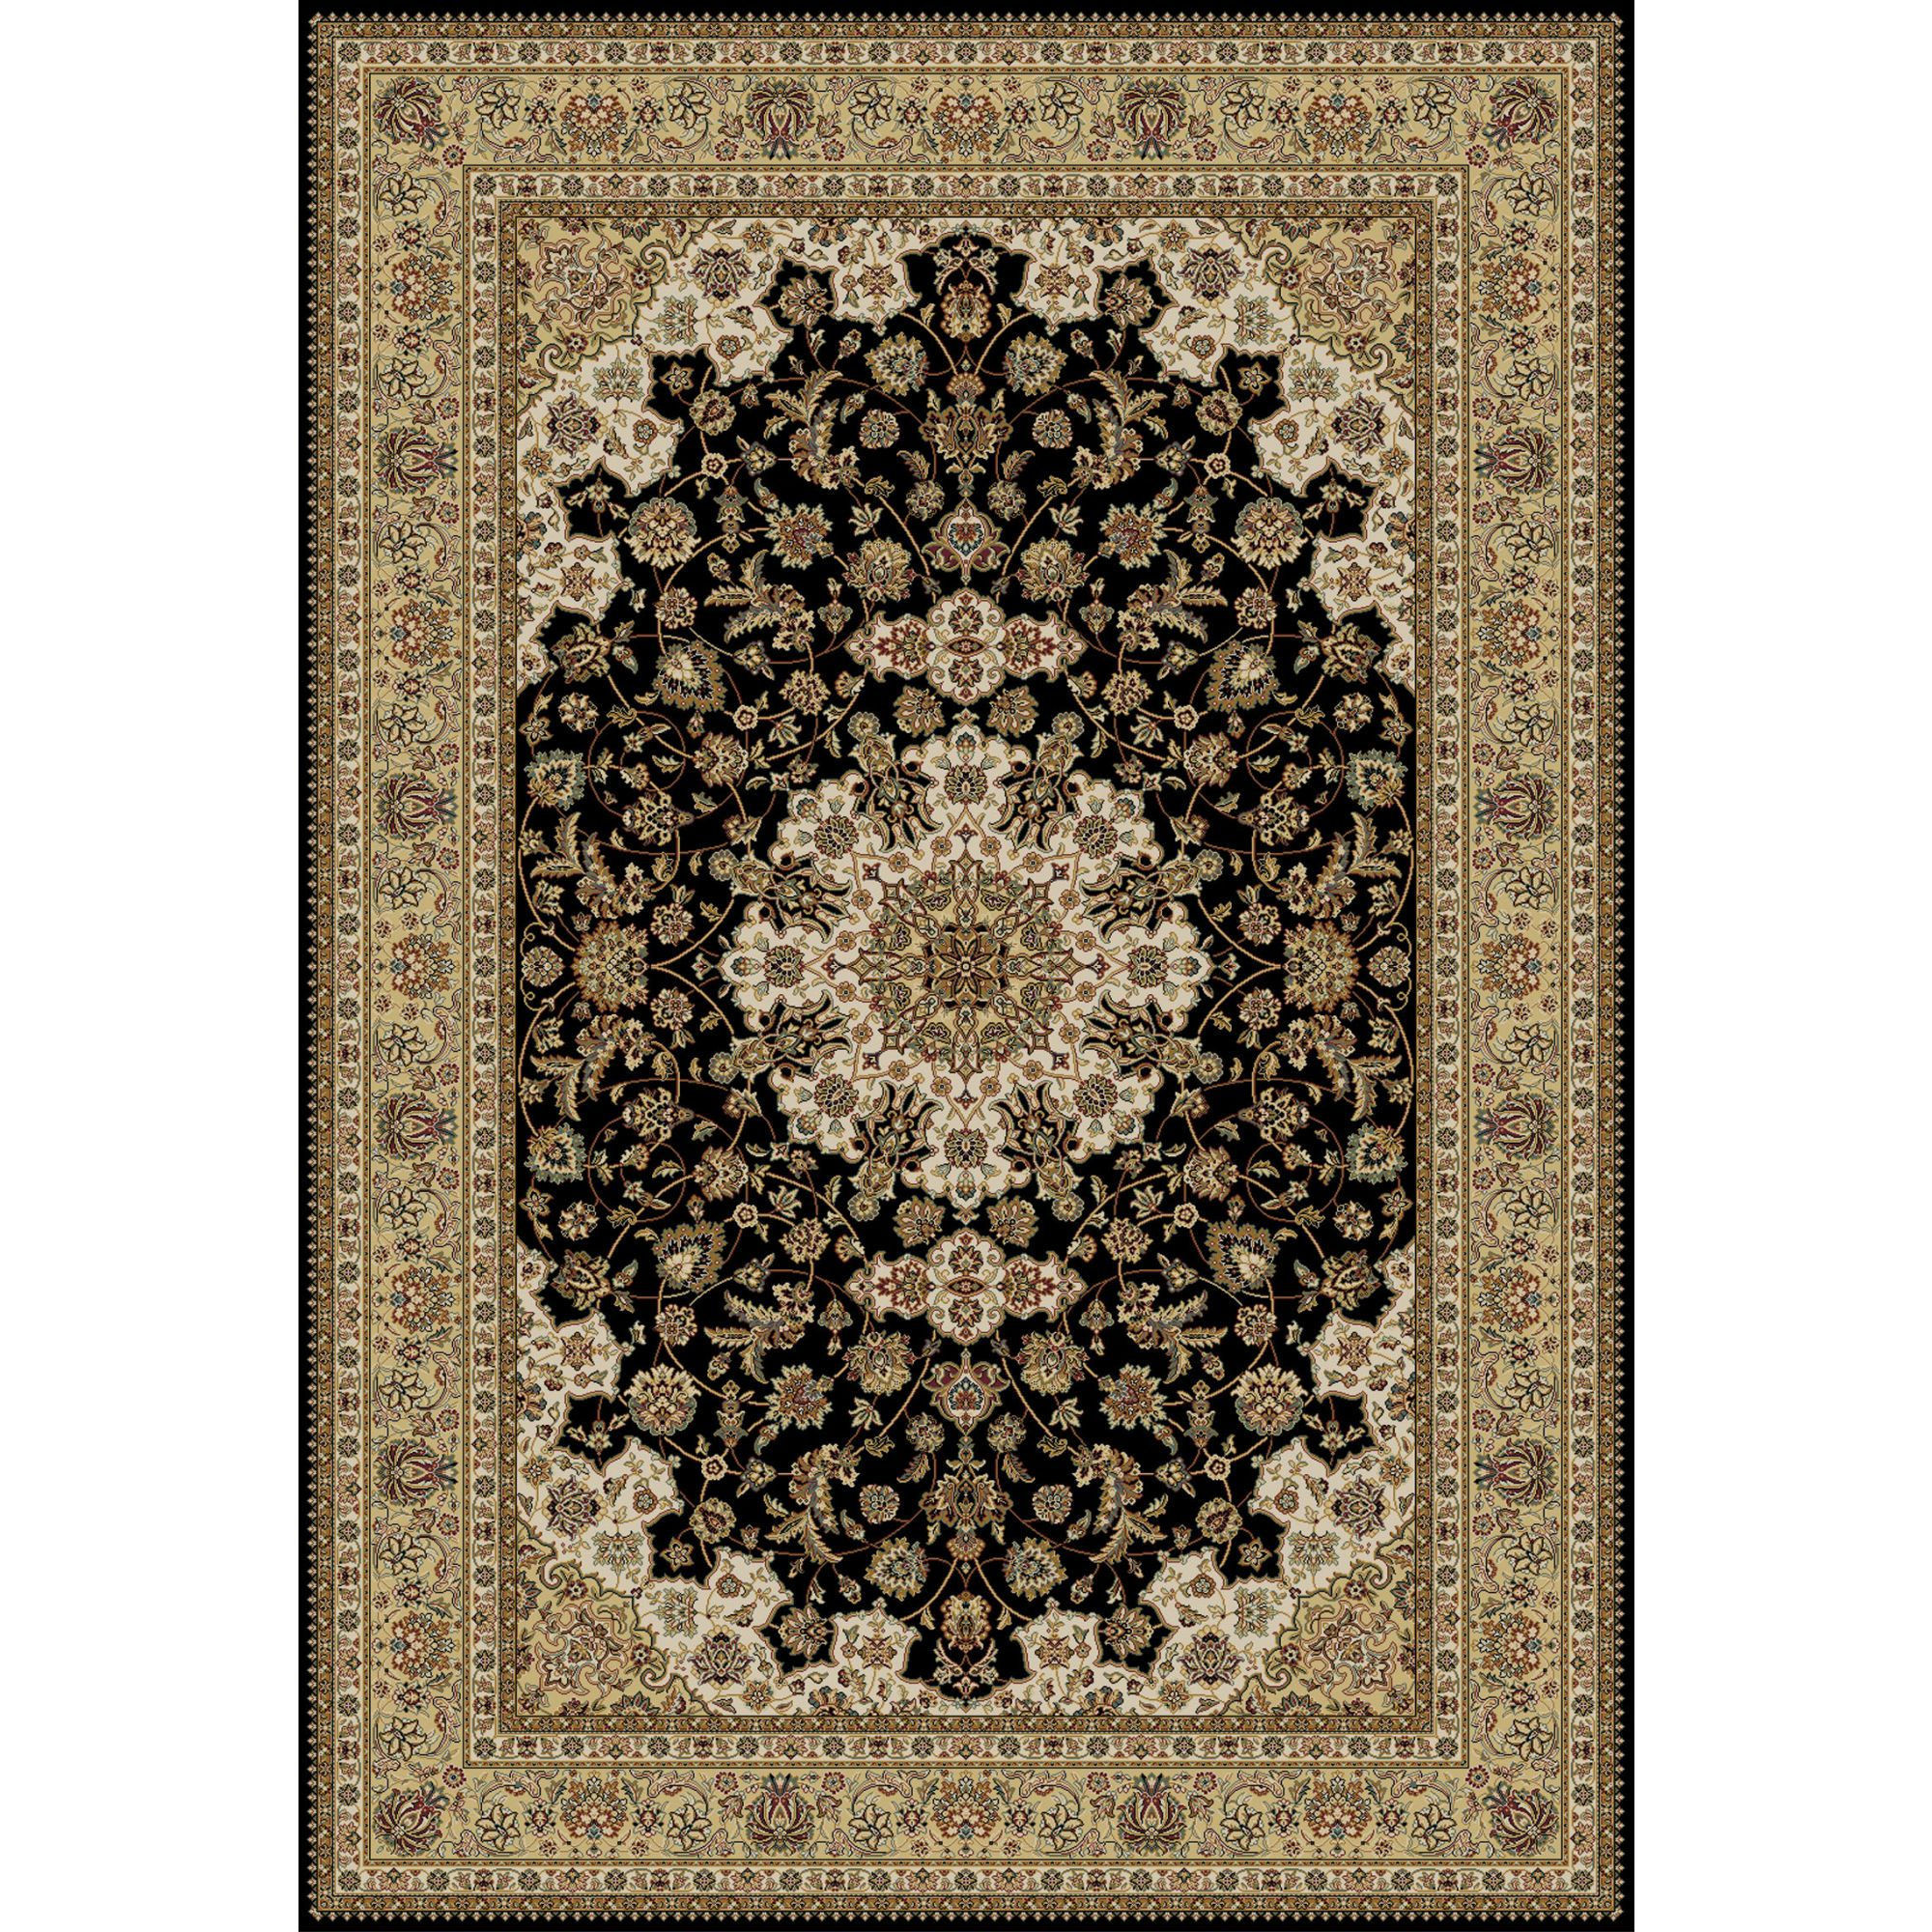 Isfahan Isfahani carpets usually have ivory backgrounds with blue